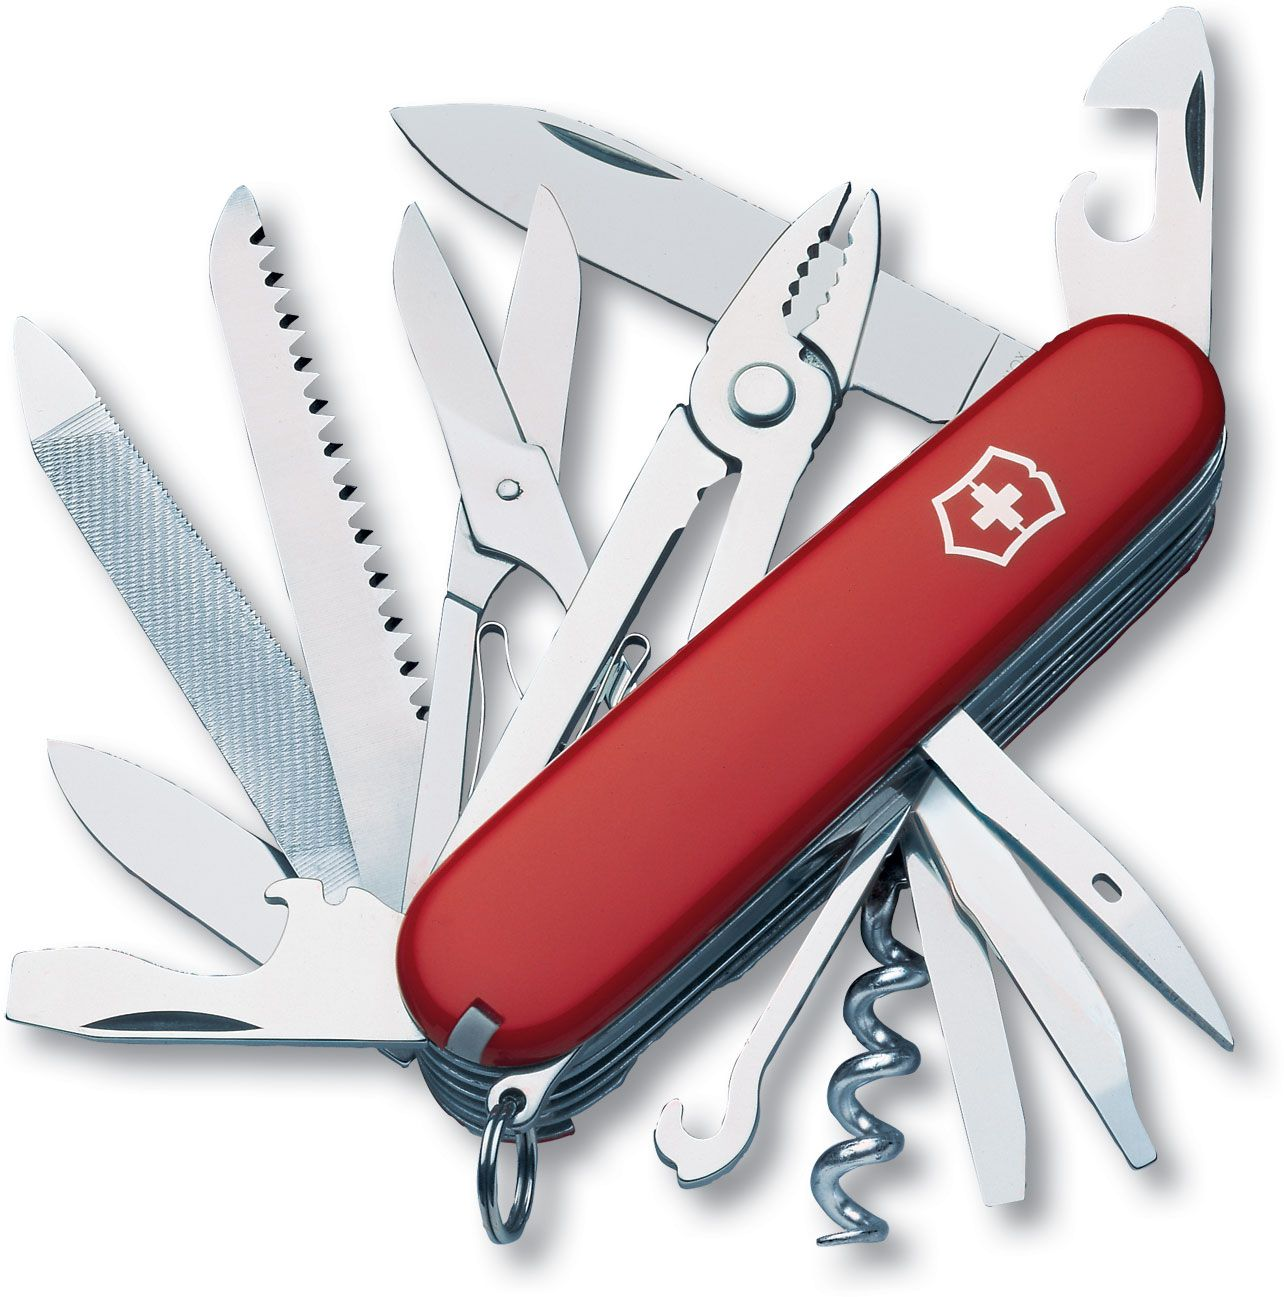 Victorinox Swiss Army Handyman Multi-Tool, Red, 3.58 inch Closed (Old Sku 53722)